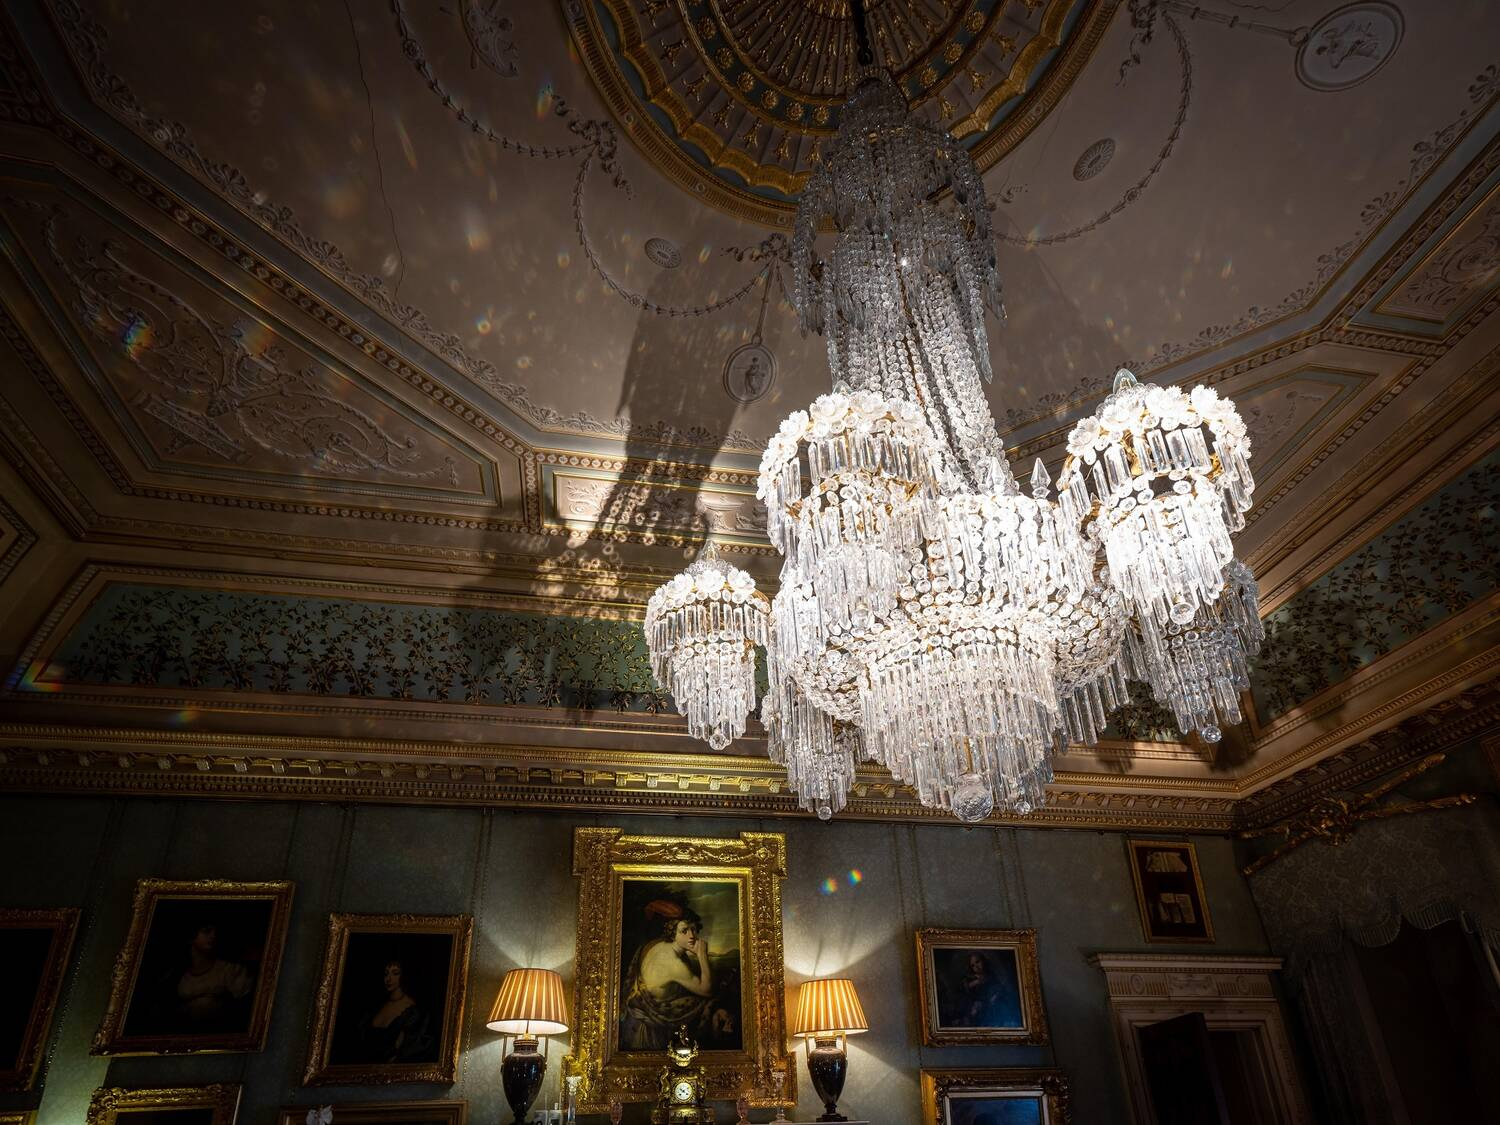 A very large crystal chandlier hangs from an ornate ceiling. It is lit. Its shadow falls onto the decorated wall panels behind, below which are displayed a number of gilt-framed portraits.